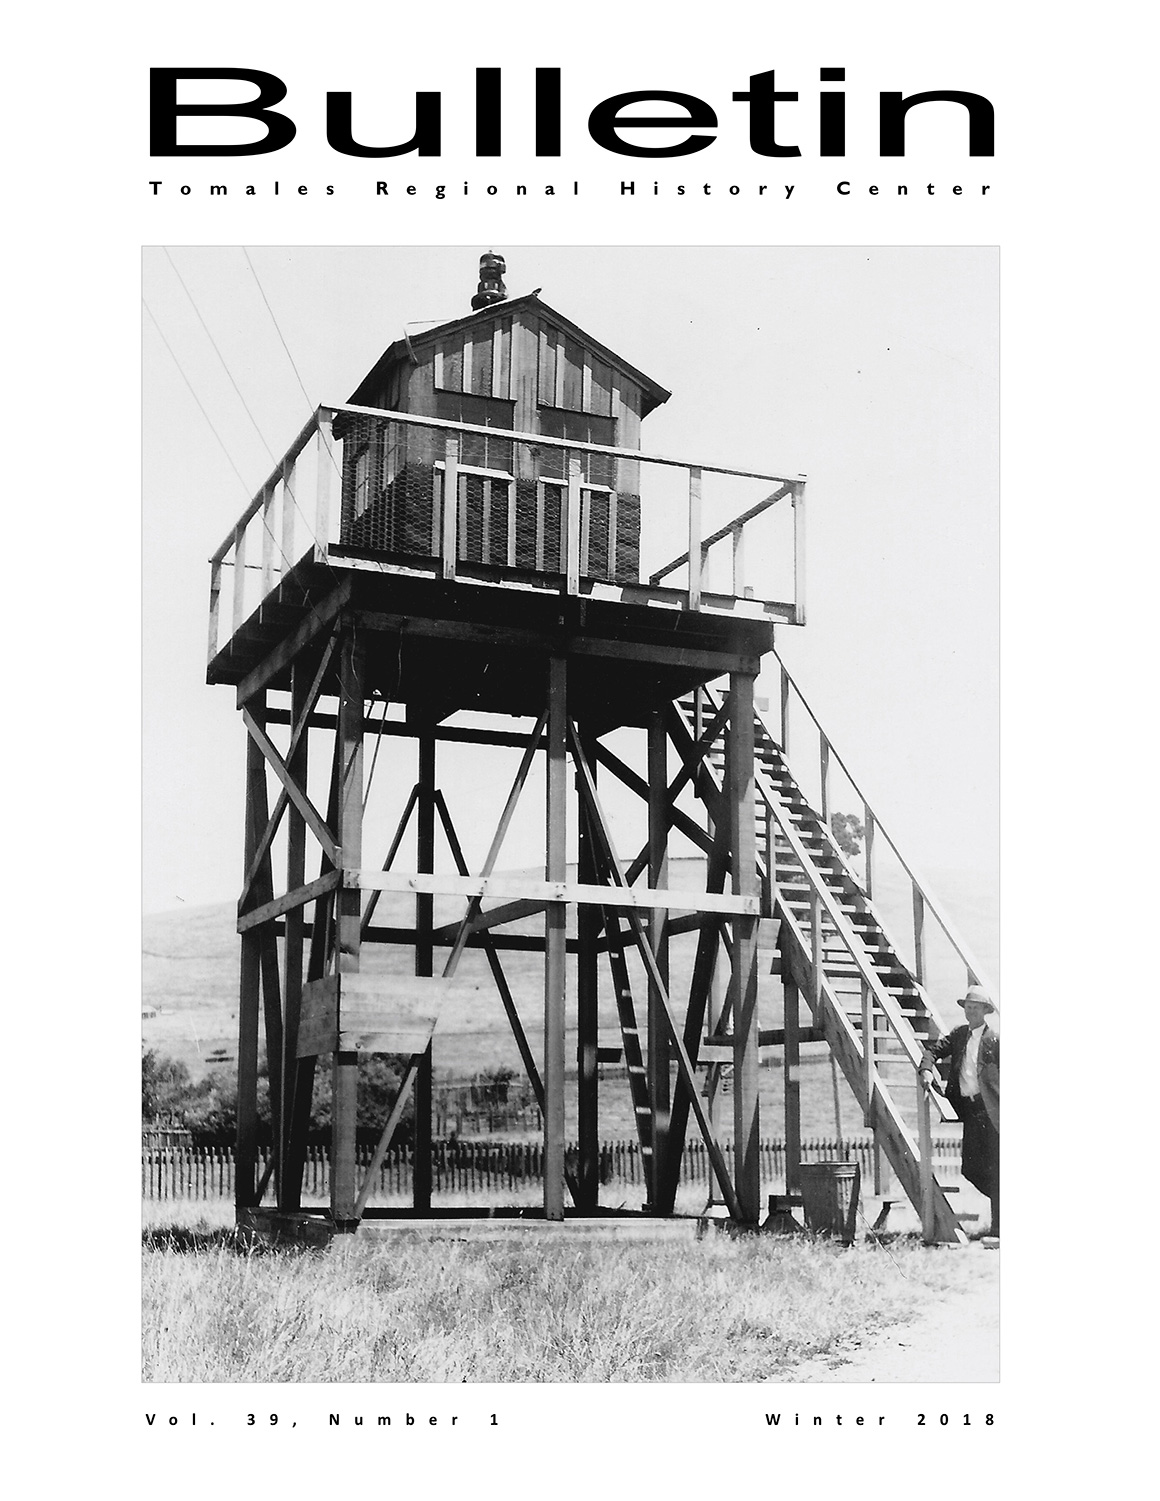 """BULLETIN, Tomales Regional History Center, Vol. 39, Number 1, Winter 2018  This New Year edition of the quarterly was inspired in large part by the disastrous fires in our neighboring Sonoma County a few months earlier. The issue's theme of """"Change, Recovery, and Adaptation"""" is a common one across all of history, and the issue explores the cycles, large and small, of local change and recovery, from well before settlement to today."""